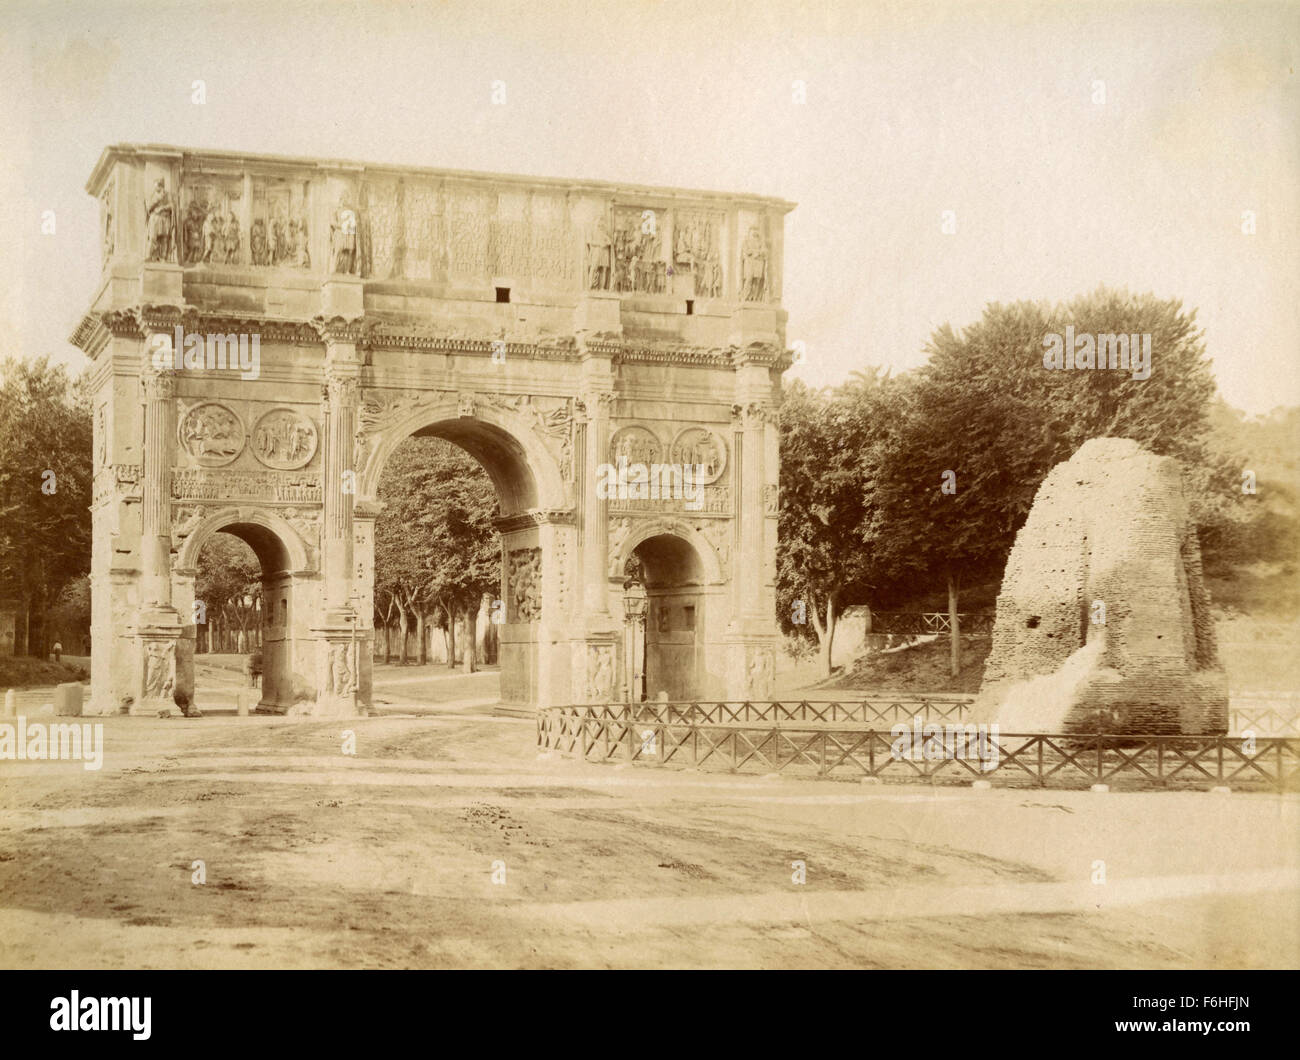 Arch of Constantine and Meta Sudans, Rome, Italy - Stock Image